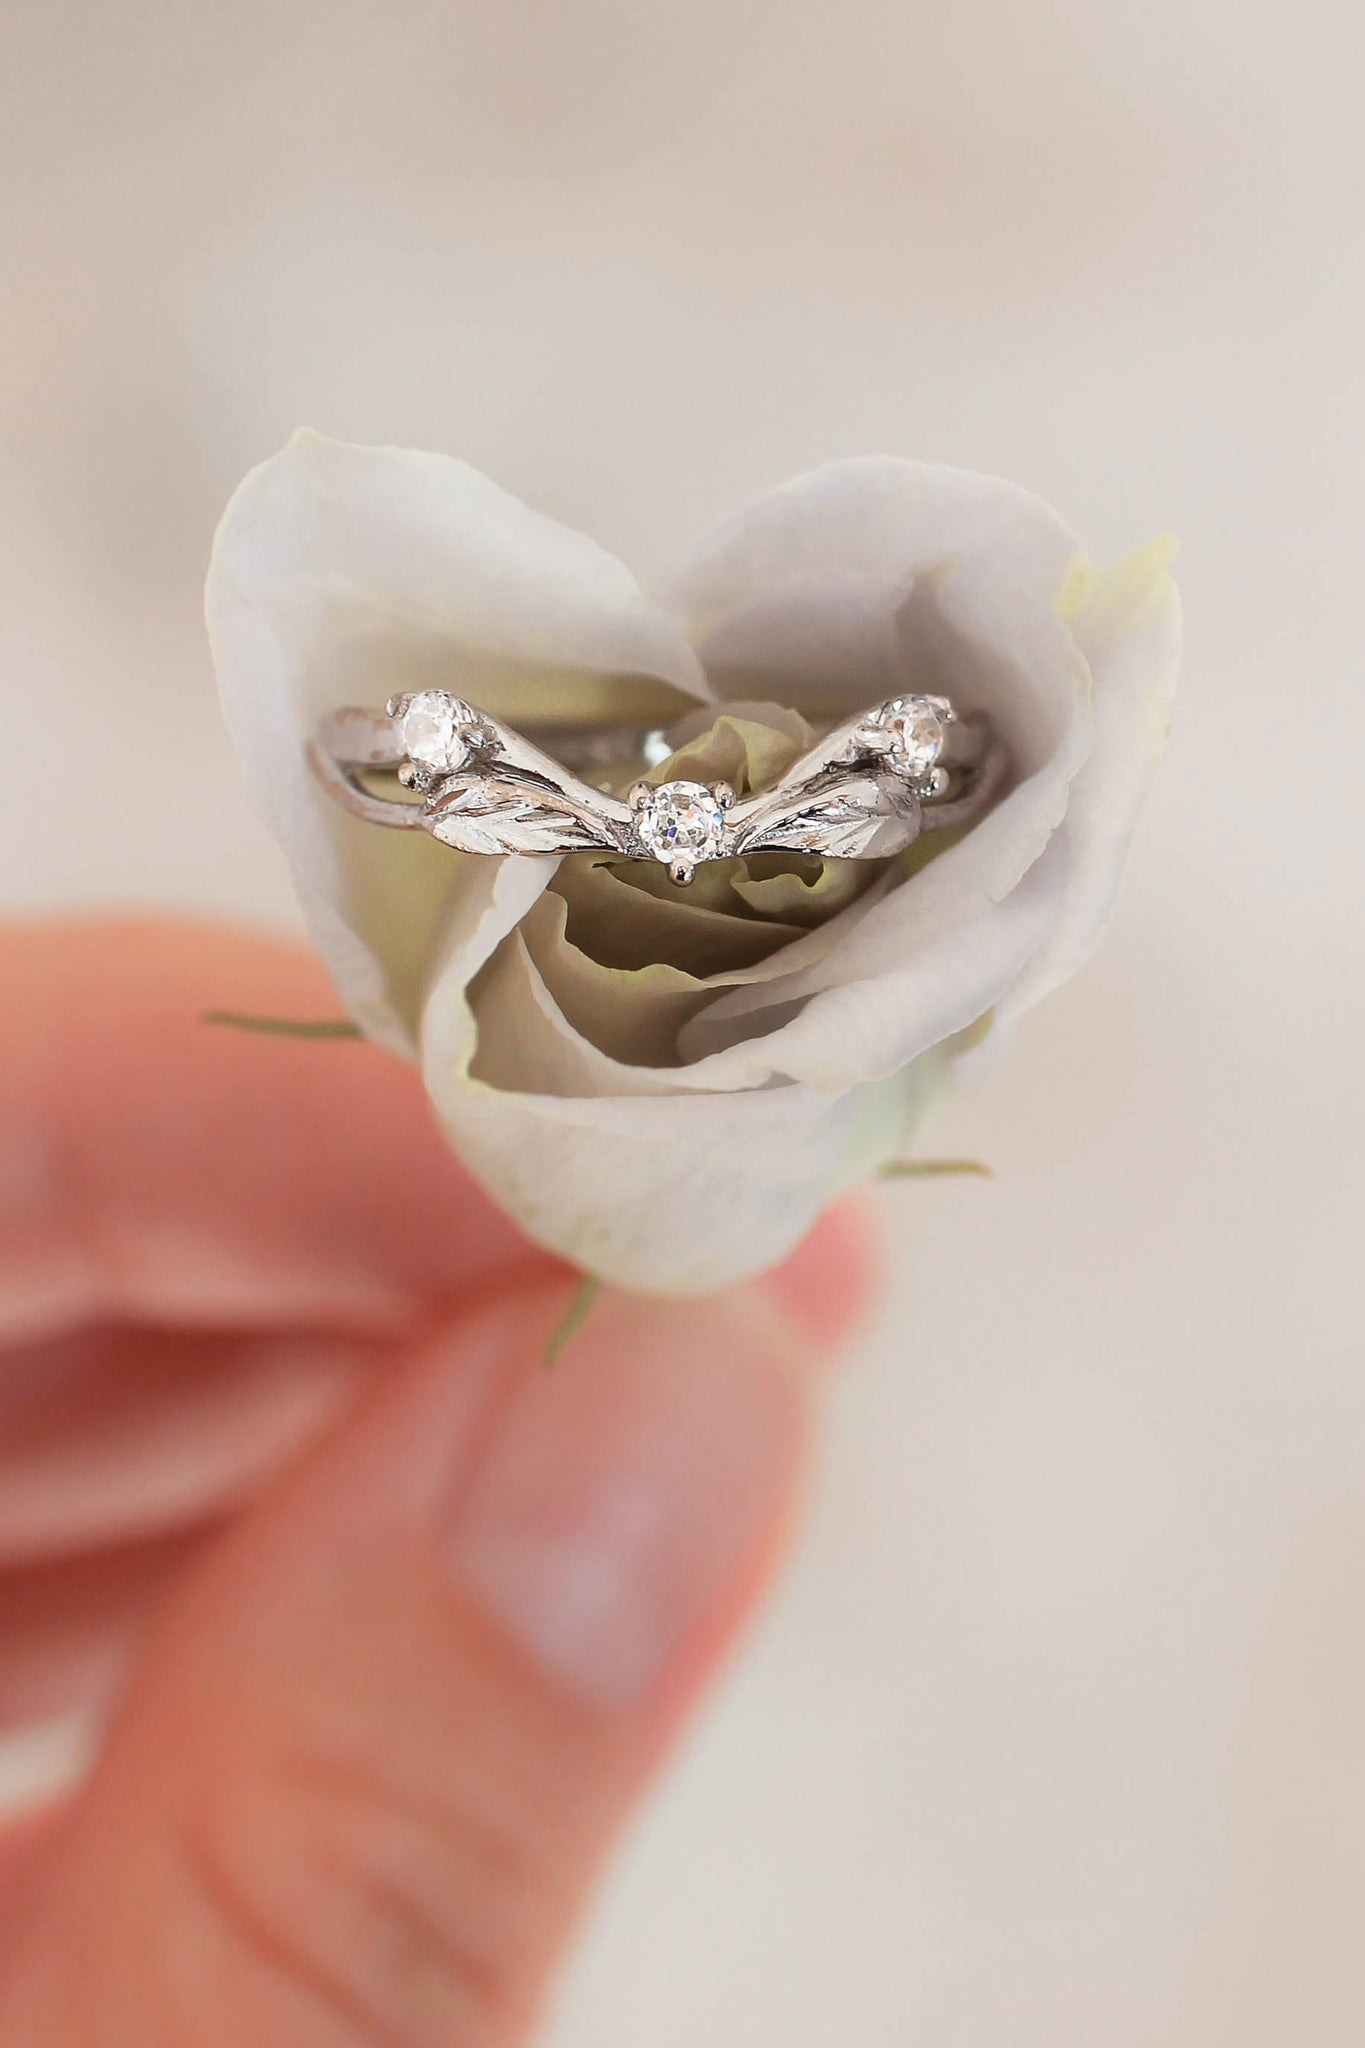 Curved wedding ring with three diamonds - Eden Garden Jewelry